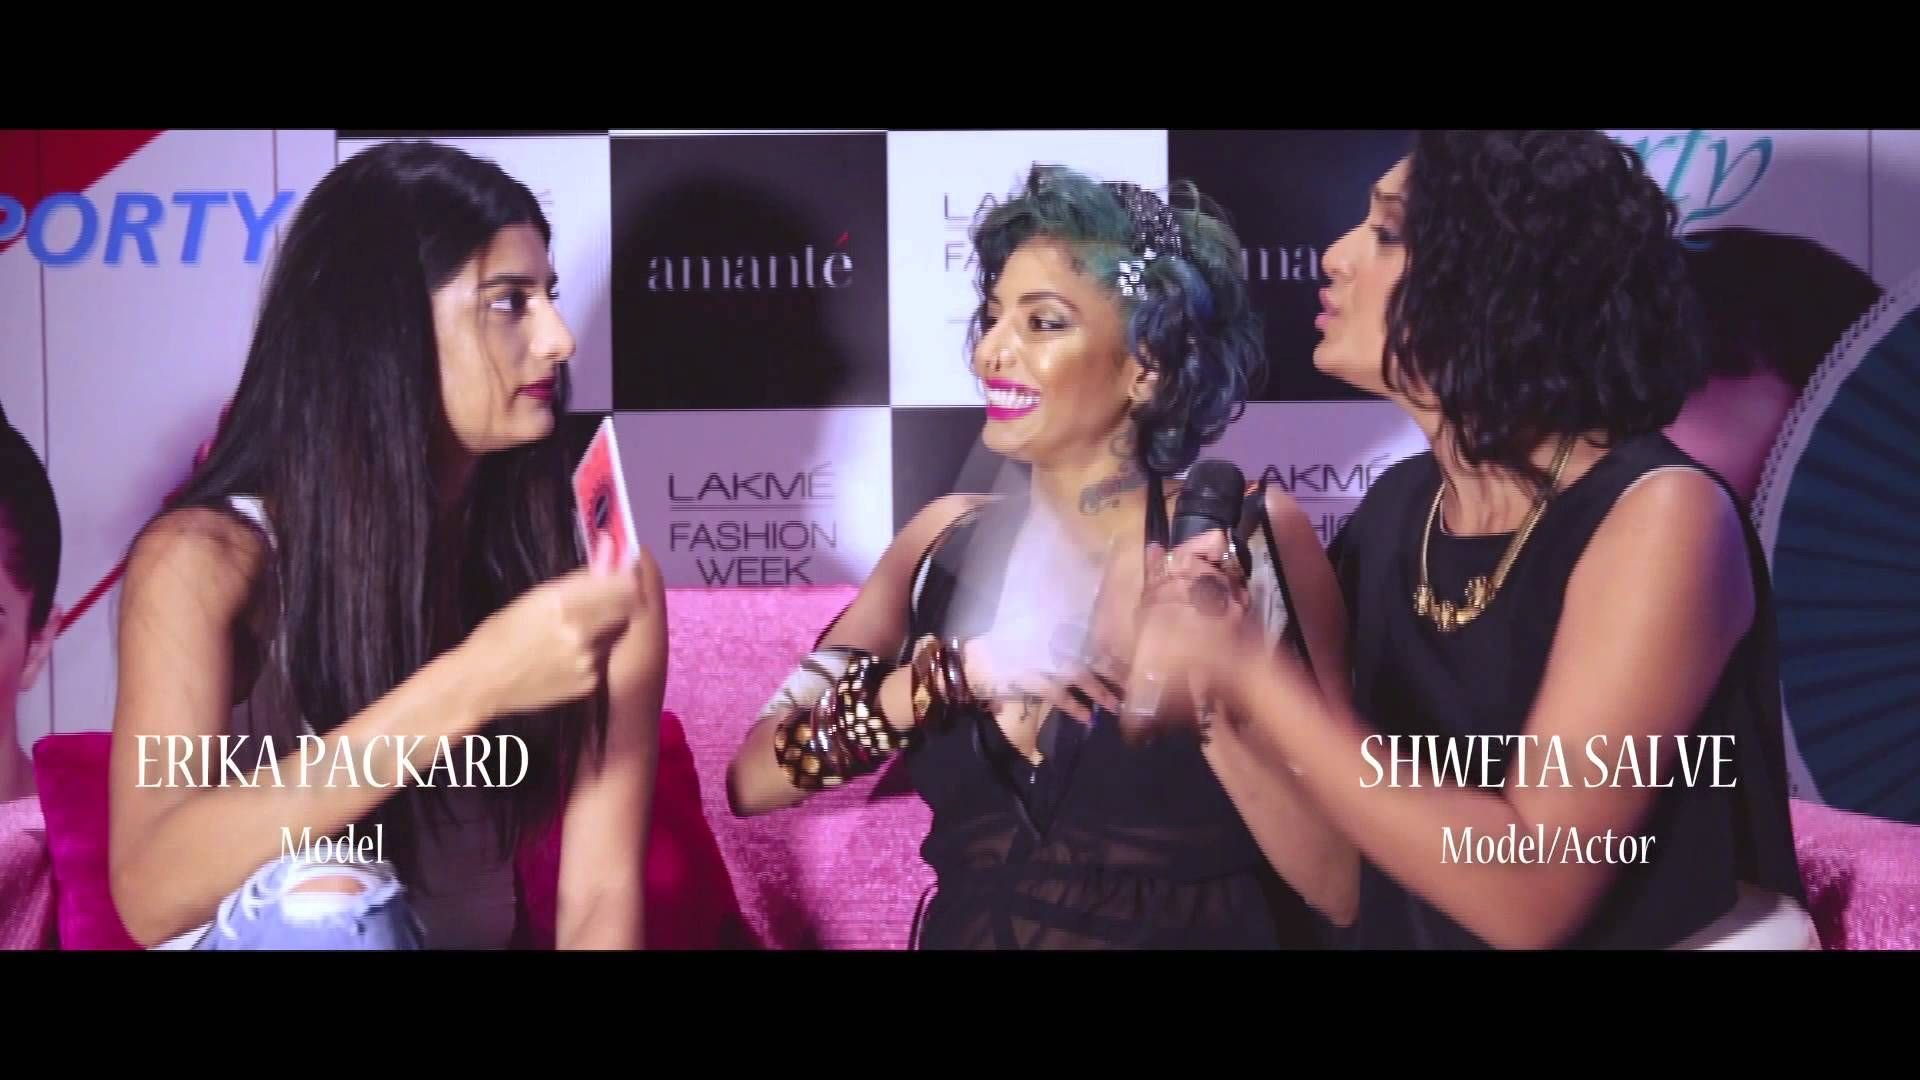 The hotness quotient just got higher because the official aftermovie of #amantéLFW is here. Checkout some of the most exciting #PinkCouch moments with Diandra Soares and Manasi Scott.